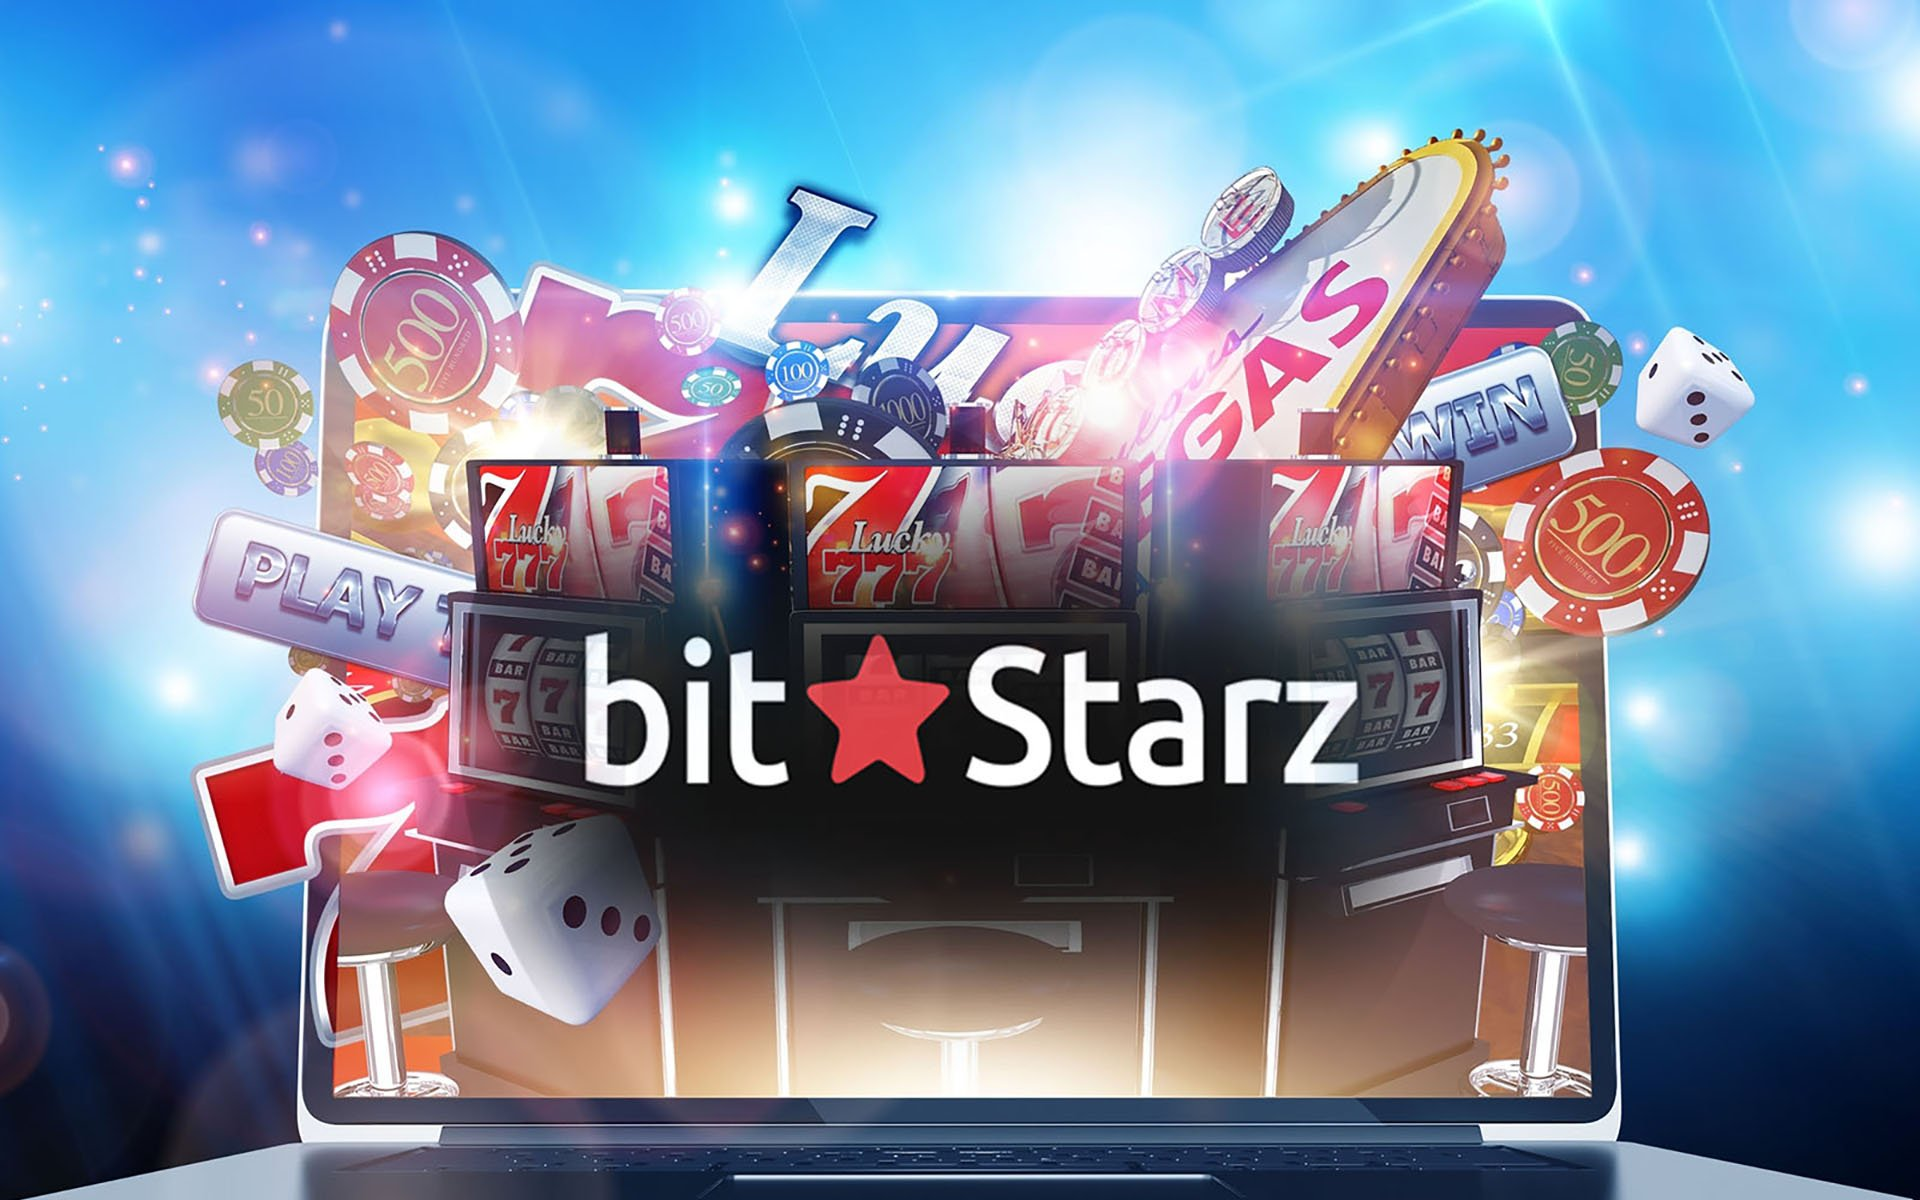 Thursday, April 4, 2018 – BitStarz Player Grabs a 19.995 BTC Win on Greedy Goblin!